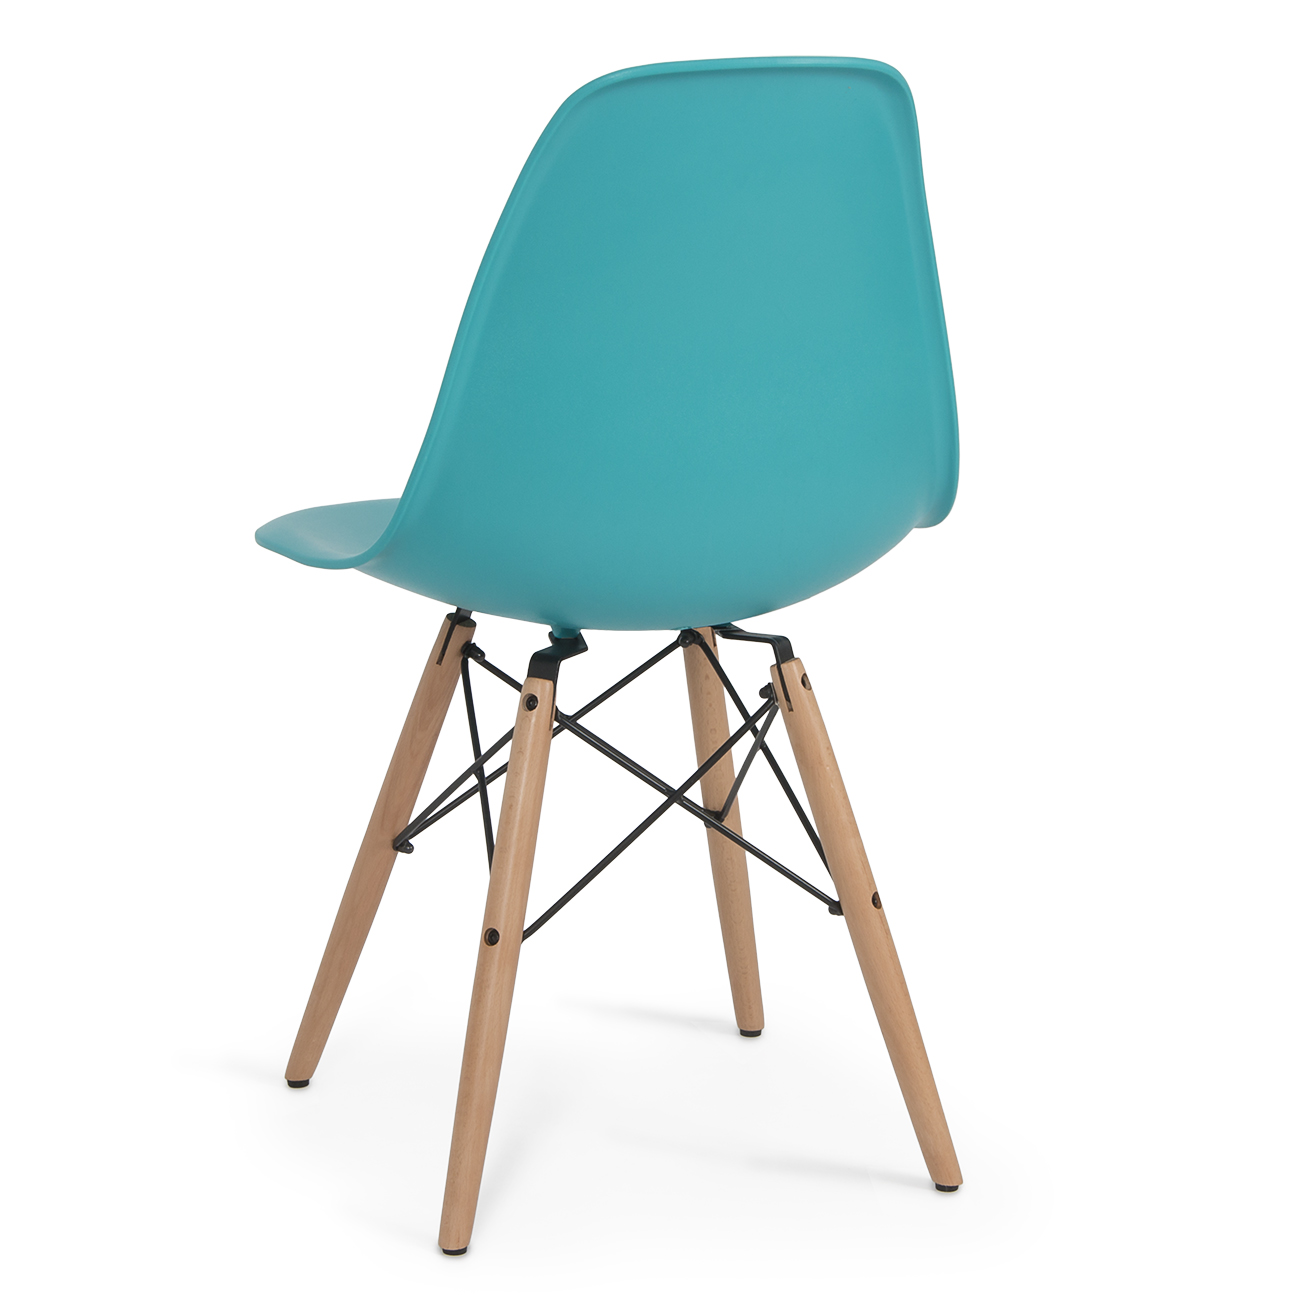 eames dining chair classic balance ball style dsw wood base mid century modern shell